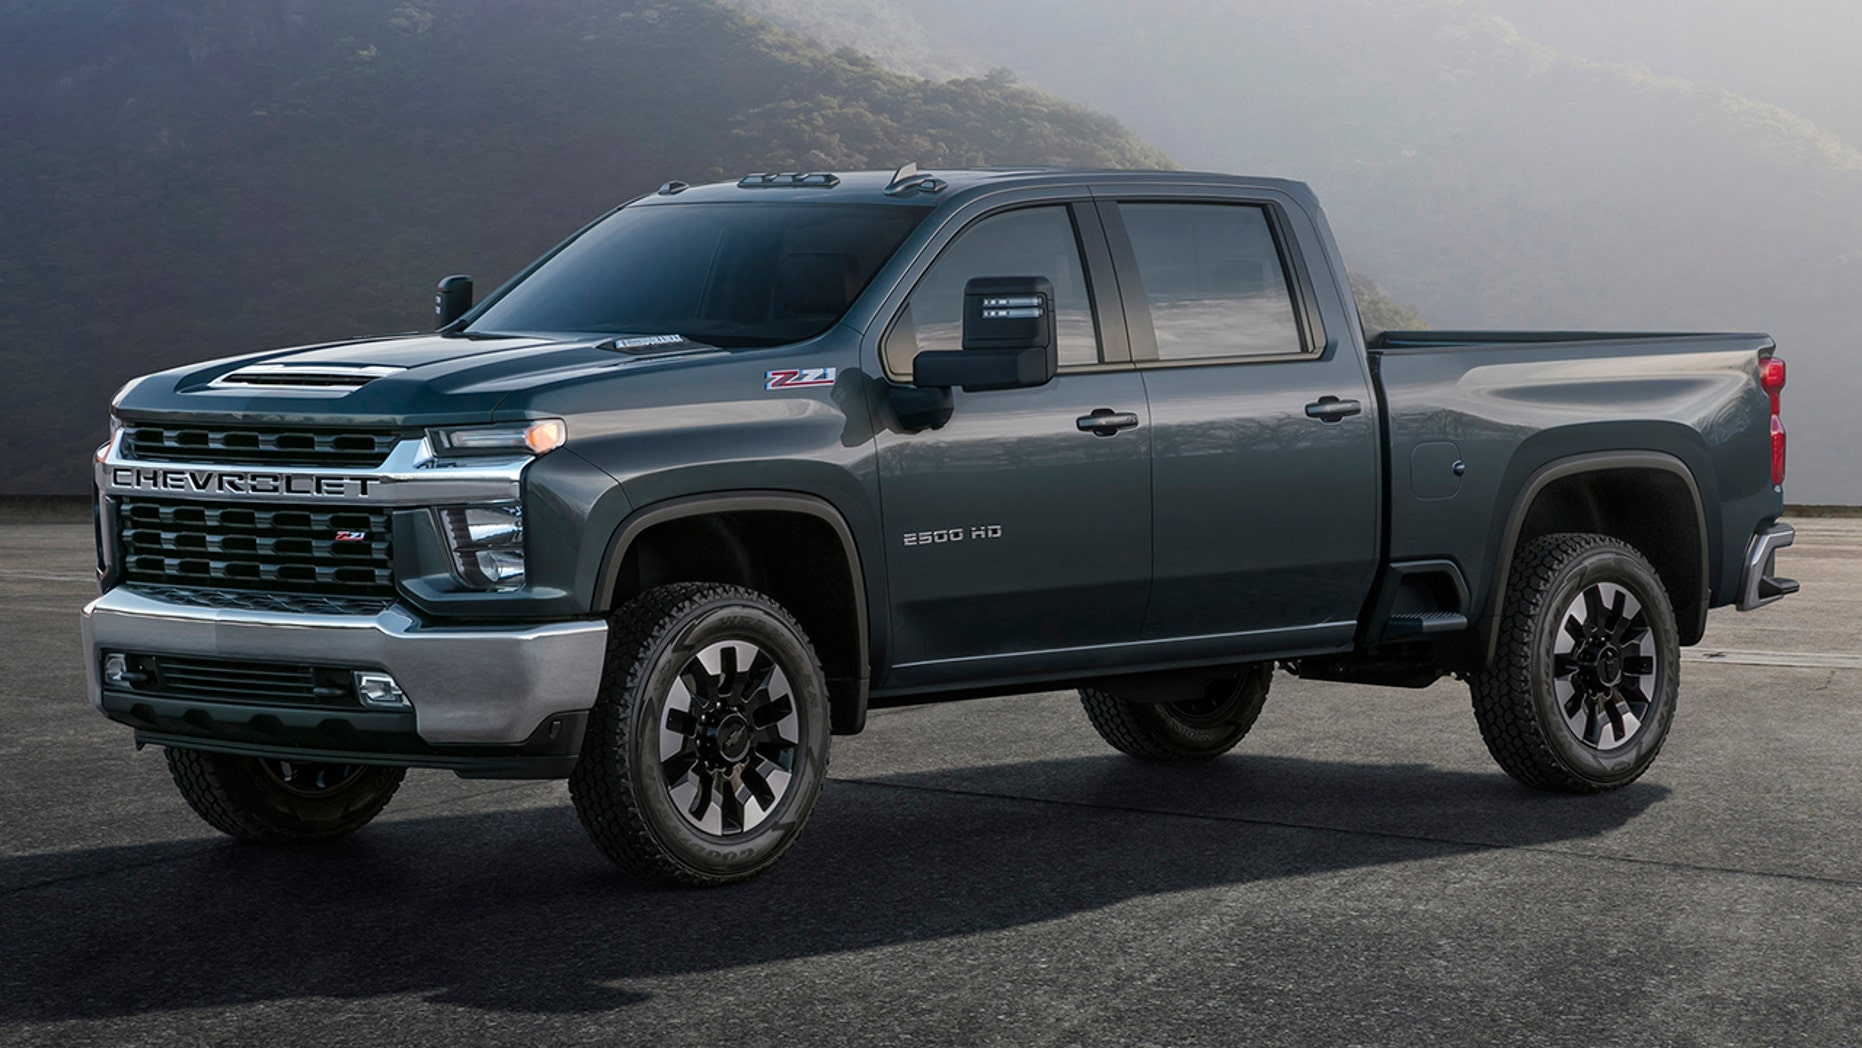 The 2020 Chevrolet Silverado HD shows its face | Fox News